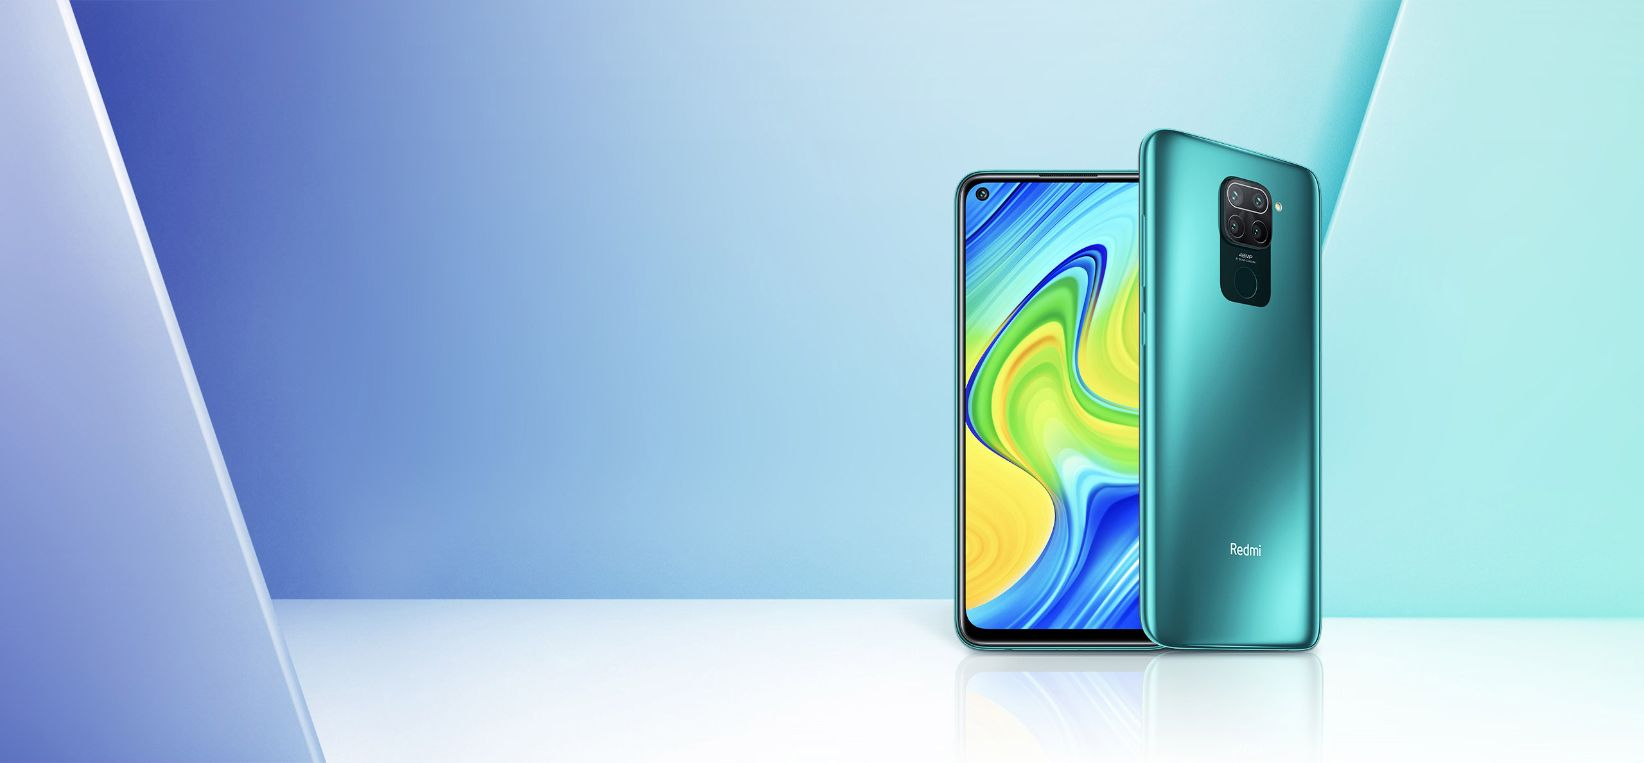 Xiaomi redmi Note 9 price in nepal